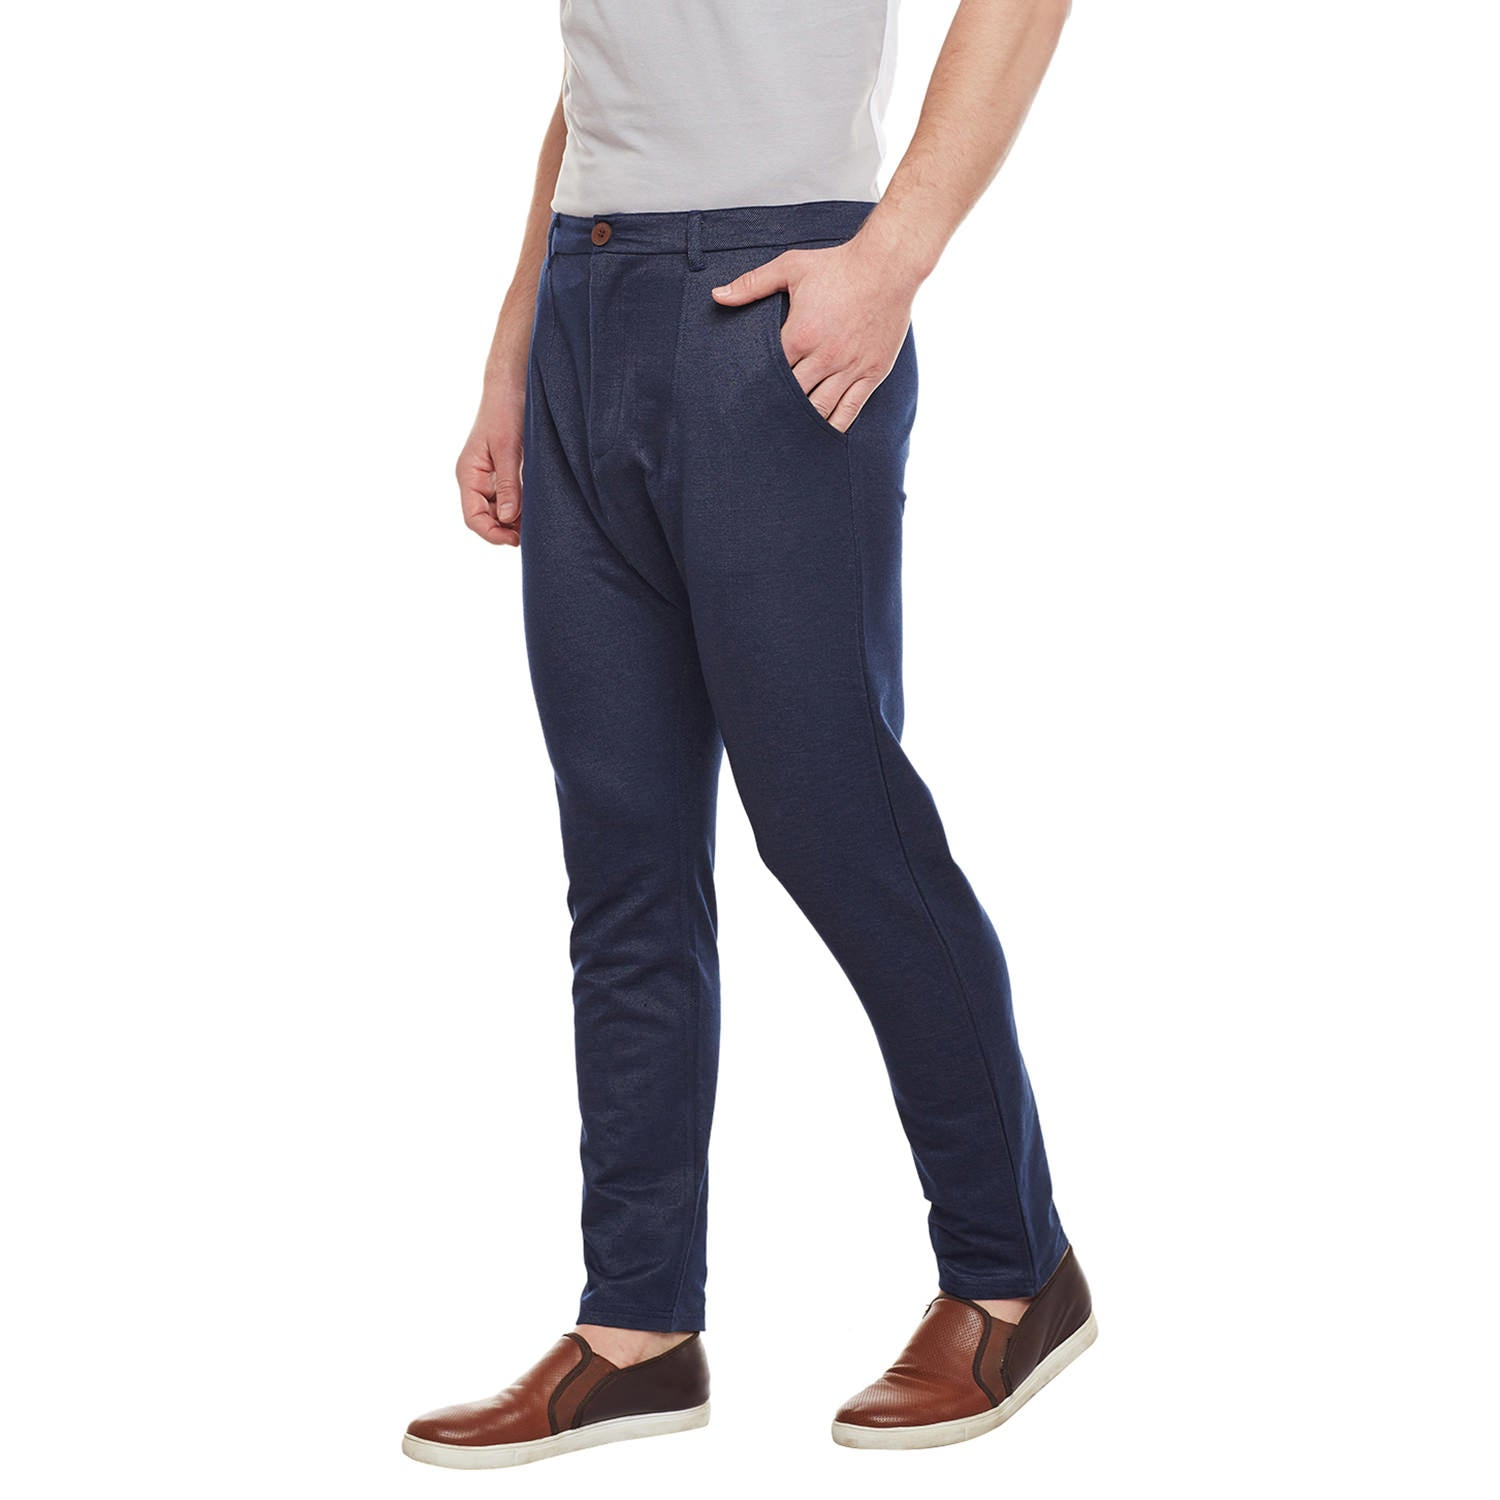 Atorse Mens Navy Blue Cotton Trouser